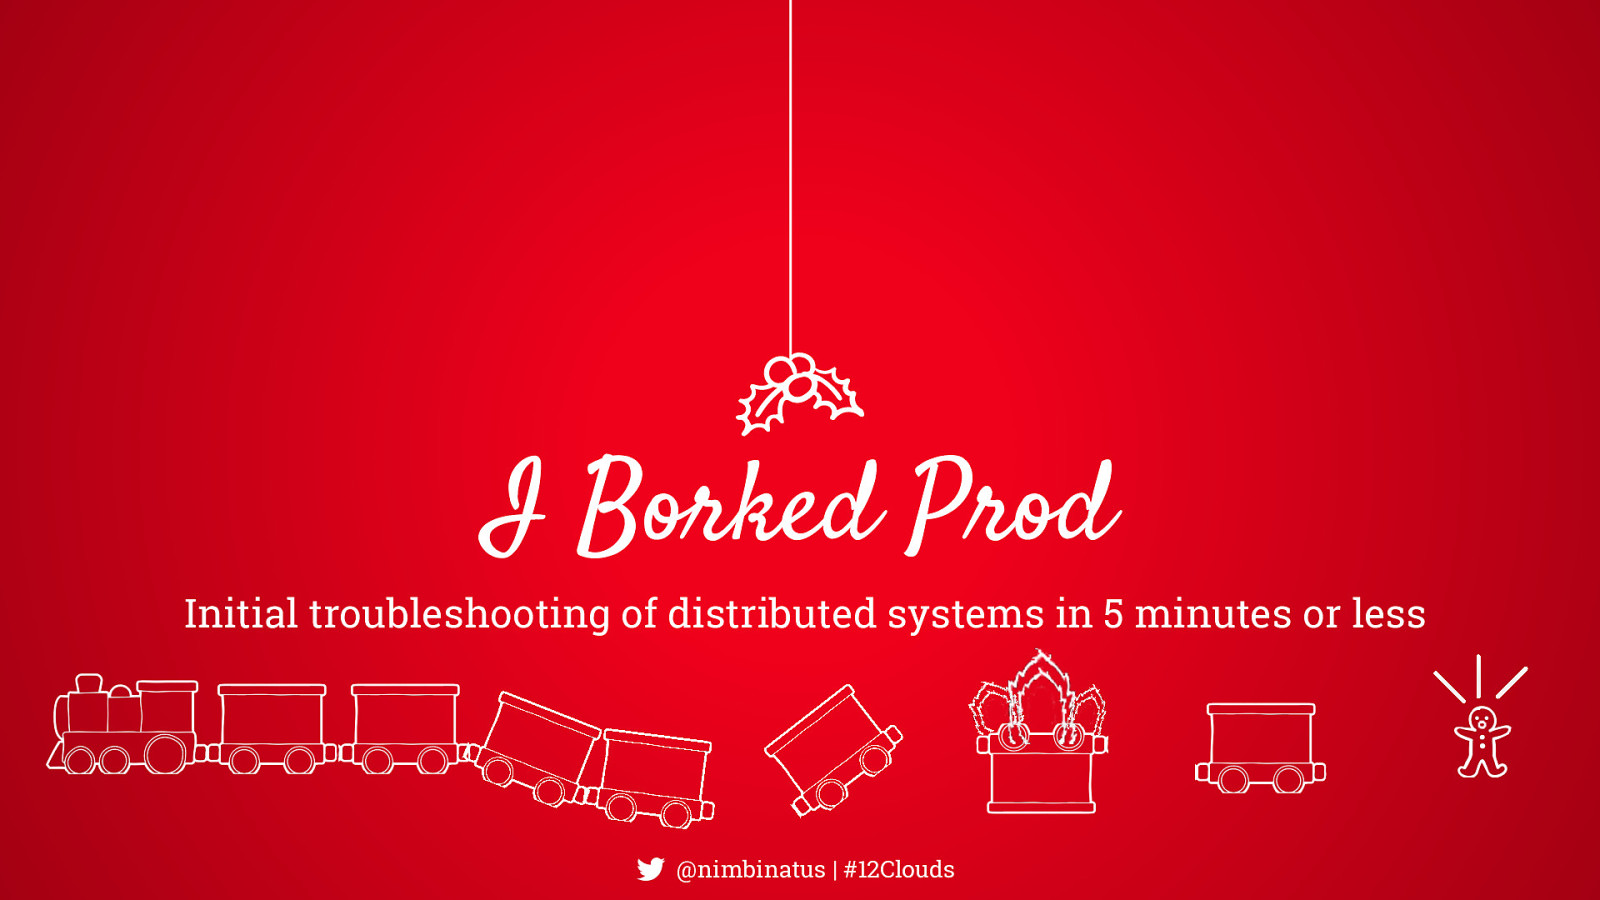 I Borked Prod: Initial troubleshooting of distributed systems in 5 minutes or less